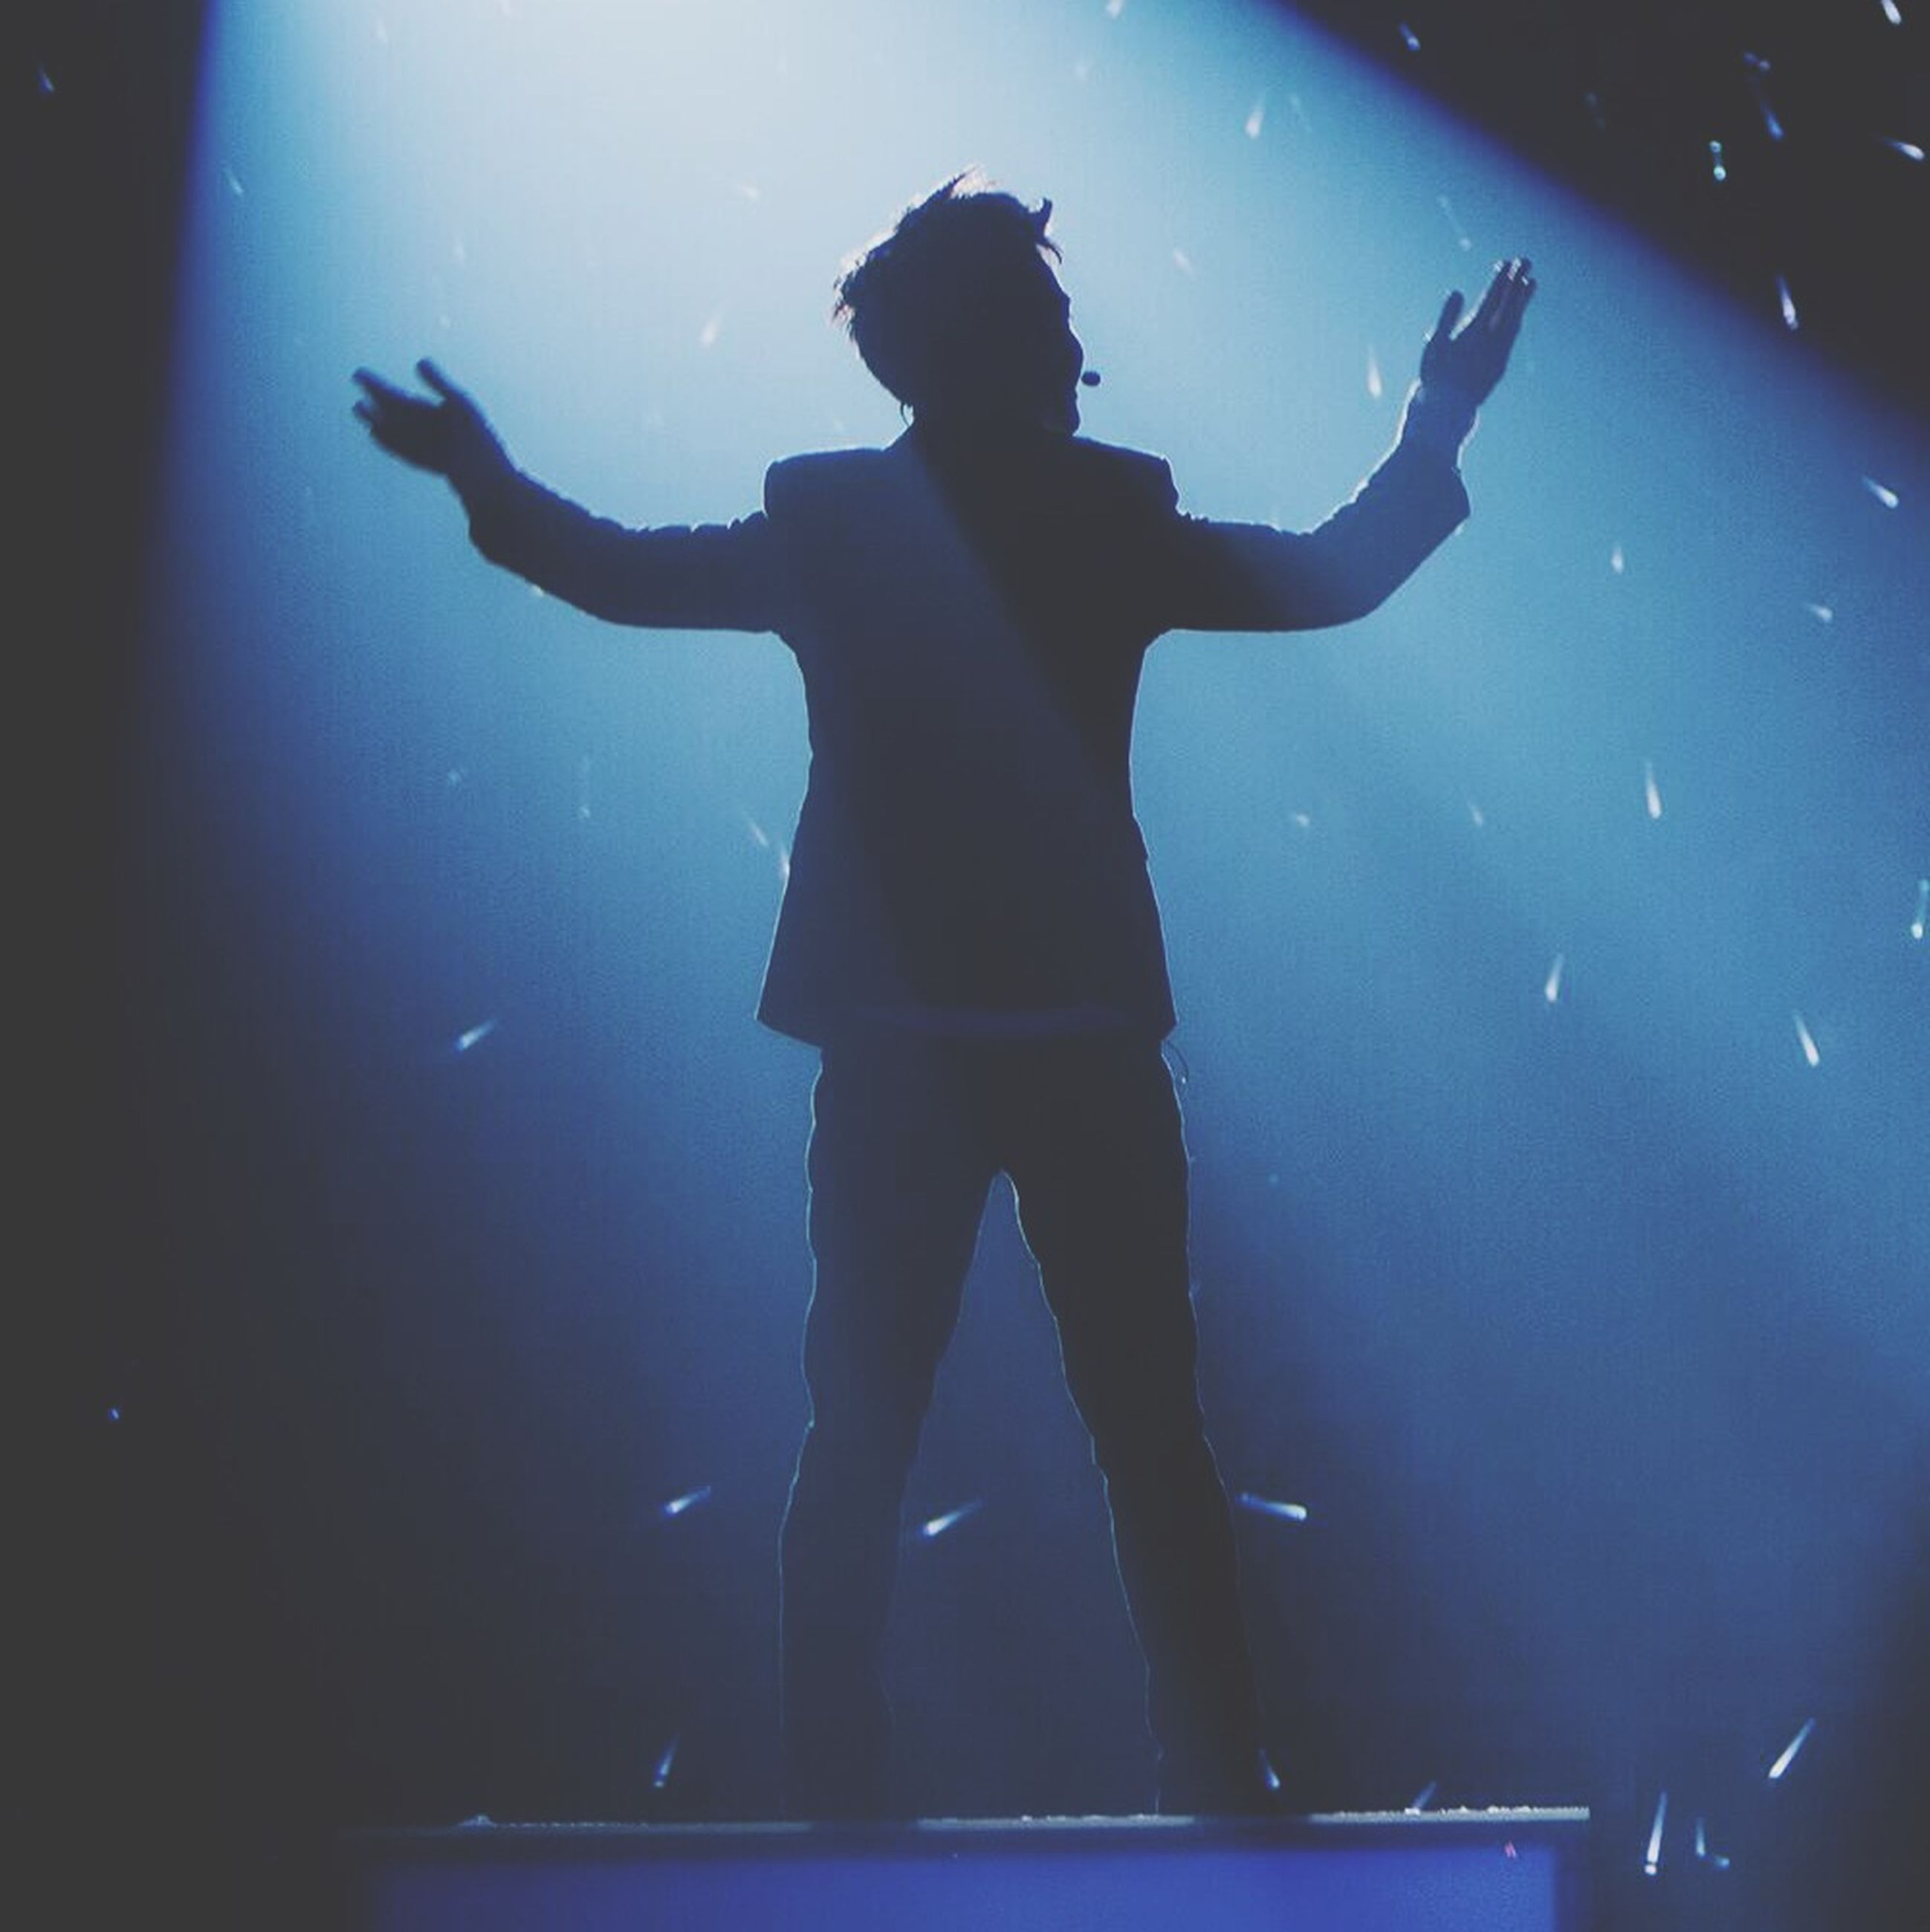 lifestyles, leisure activity, full length, enjoyment, fun, night, arms raised, silhouette, men, standing, indoors, jumping, arms outstretched, low angle view, carefree, illuminated, playing, blue